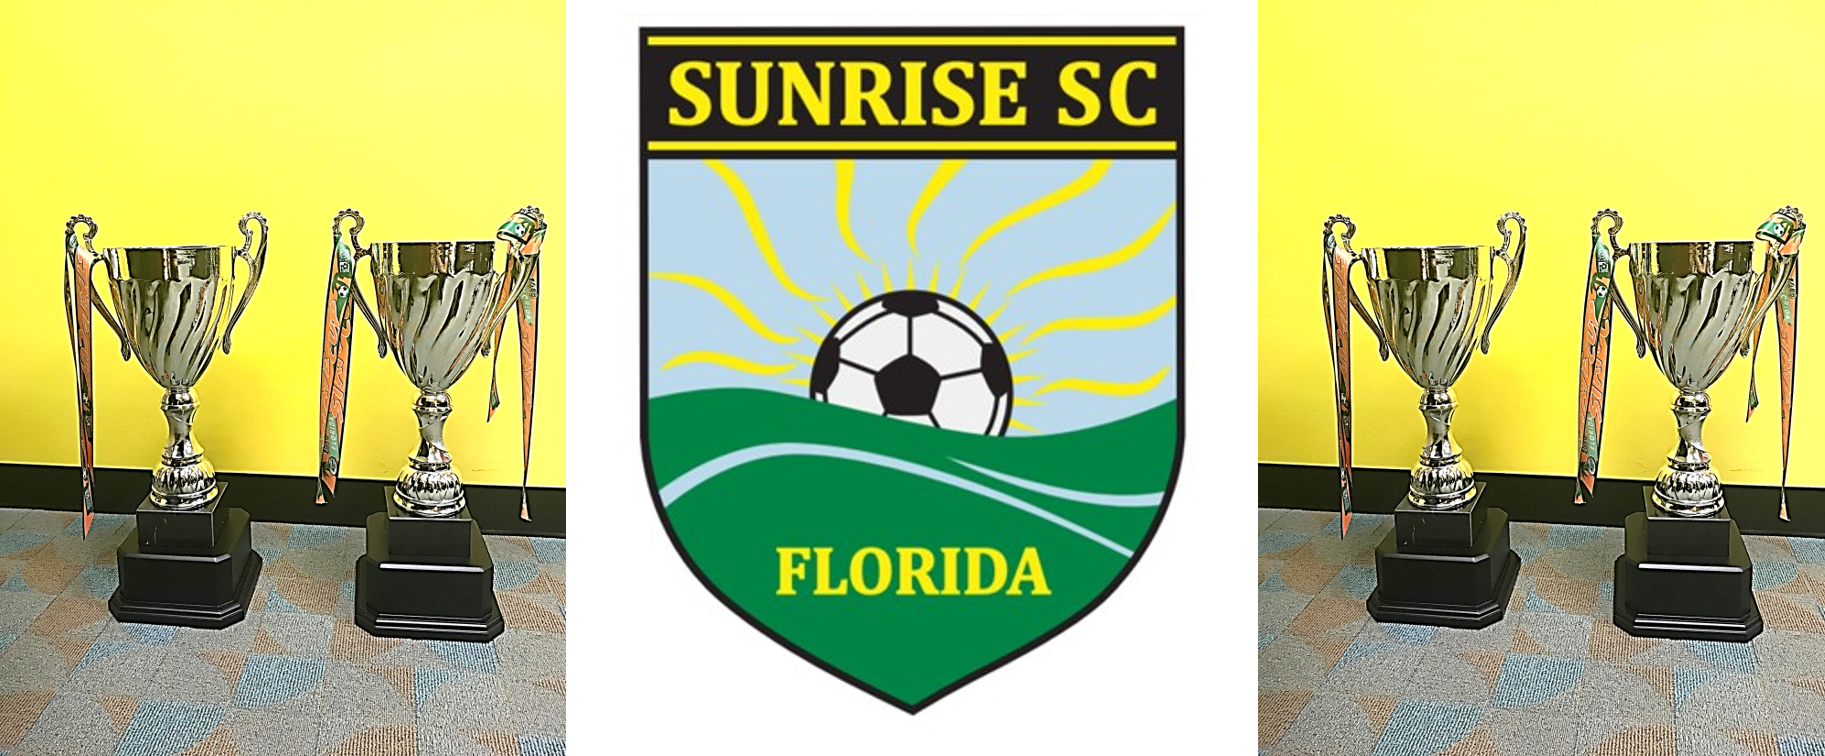 d2ccd36d7 ... Sunrise SC Wins a Florida Record 4 State Championships in one Year!  (1999